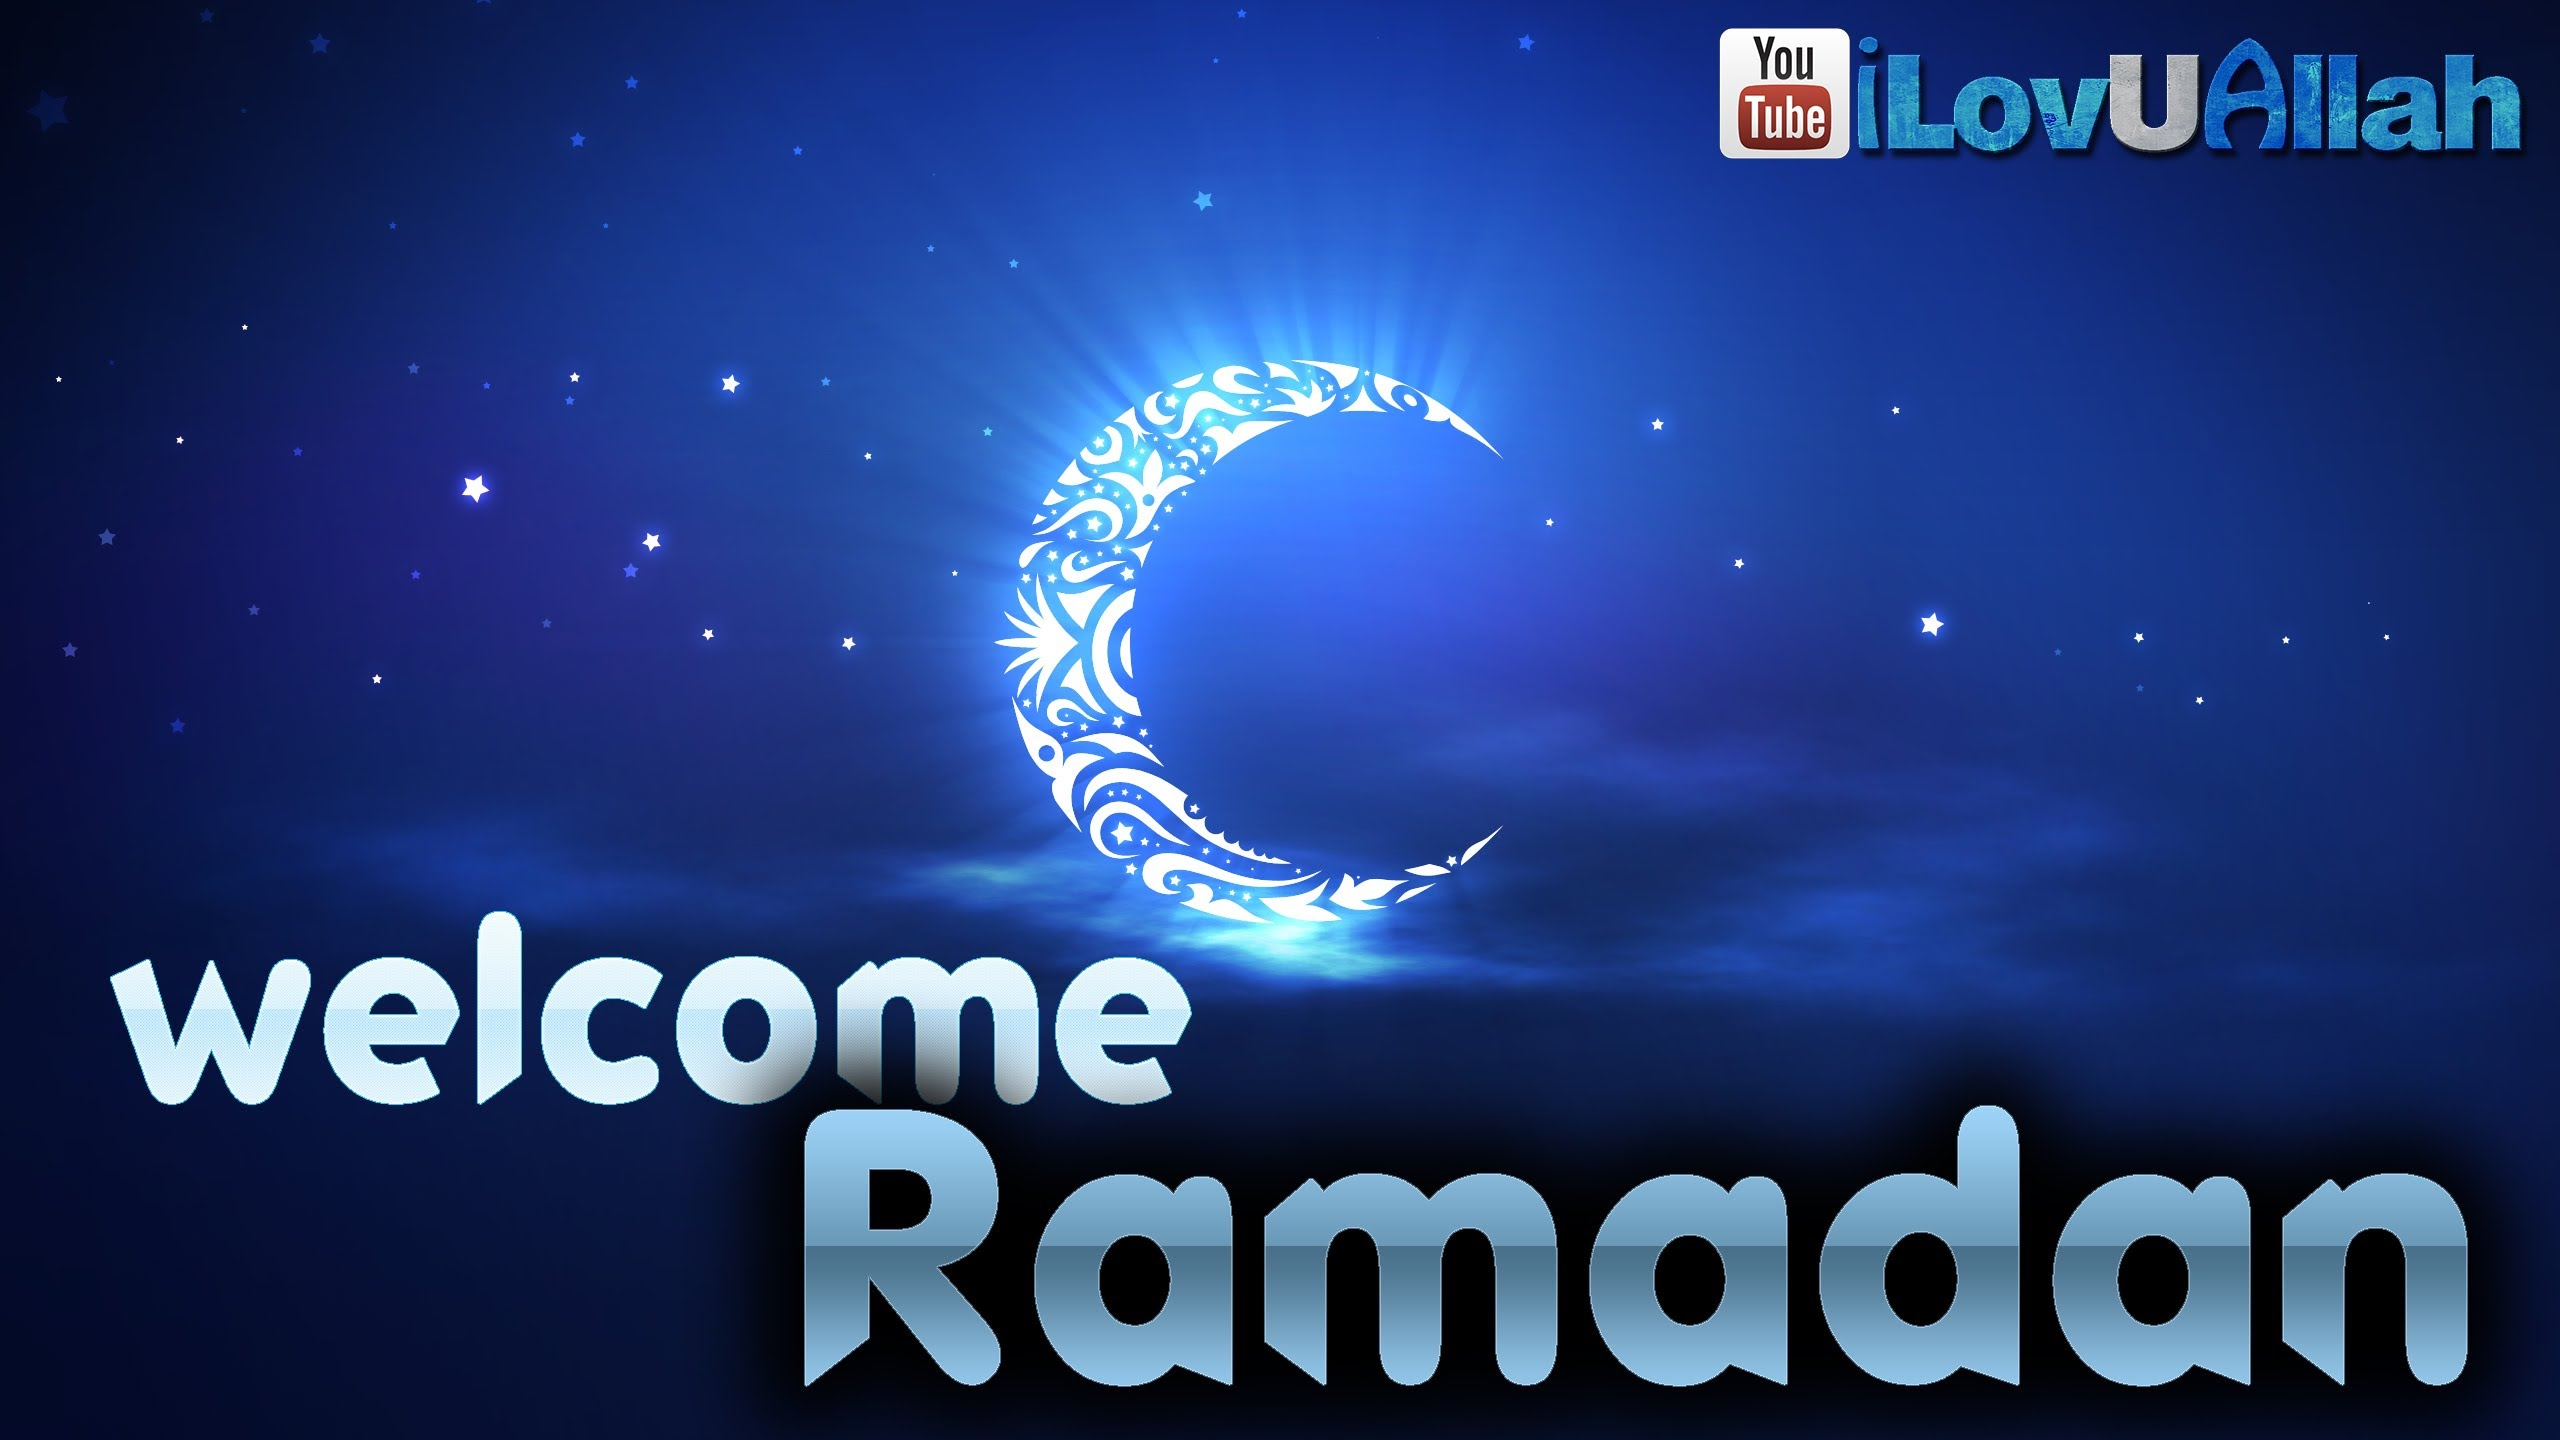 Welcome Ramadan Images Hd